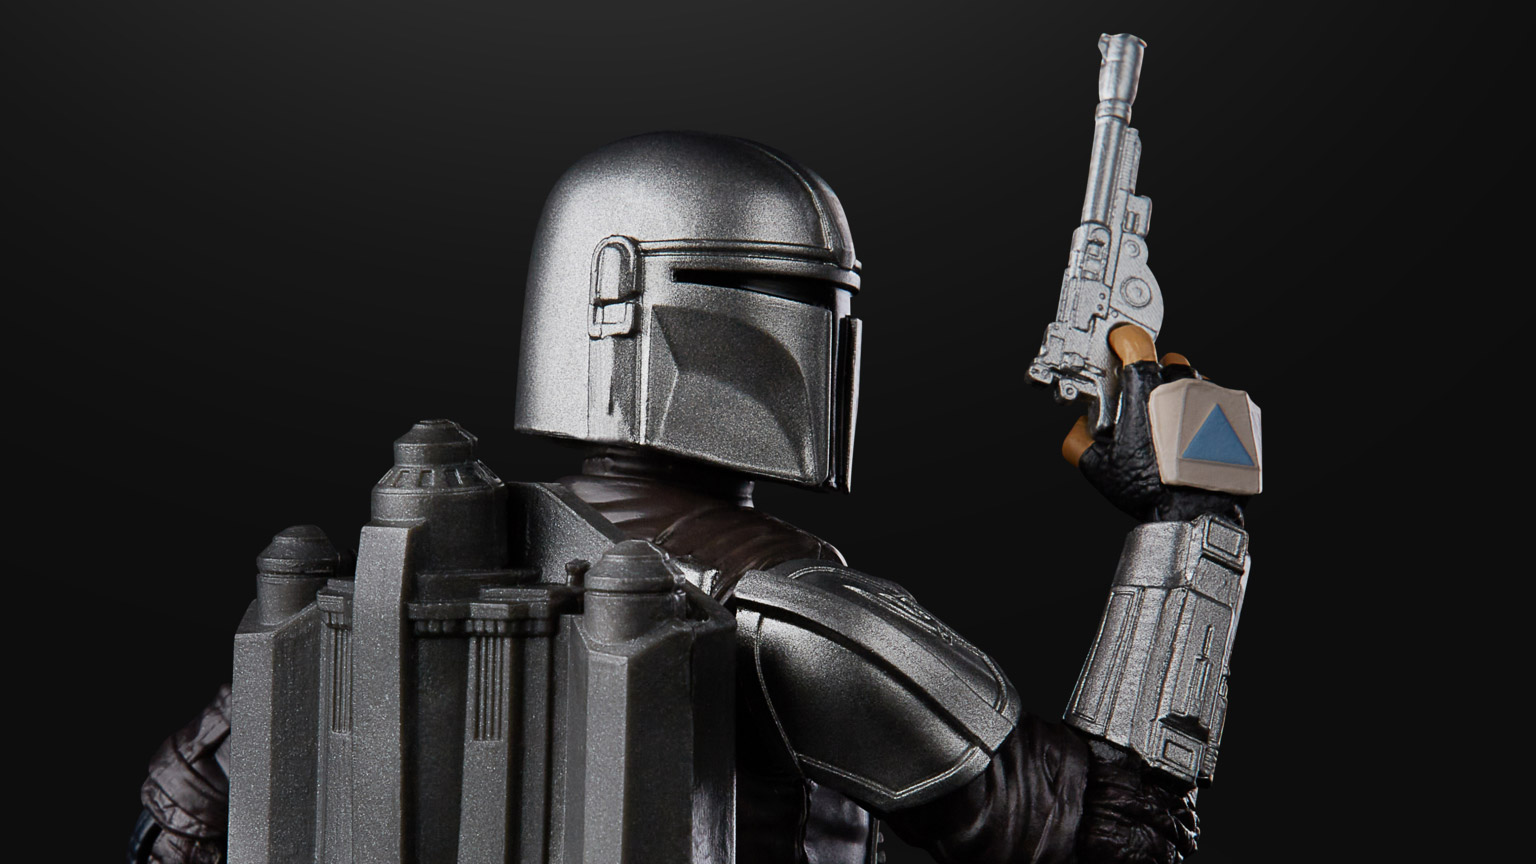 A new Hasbro Black Series Mandalorian in beskar armor.